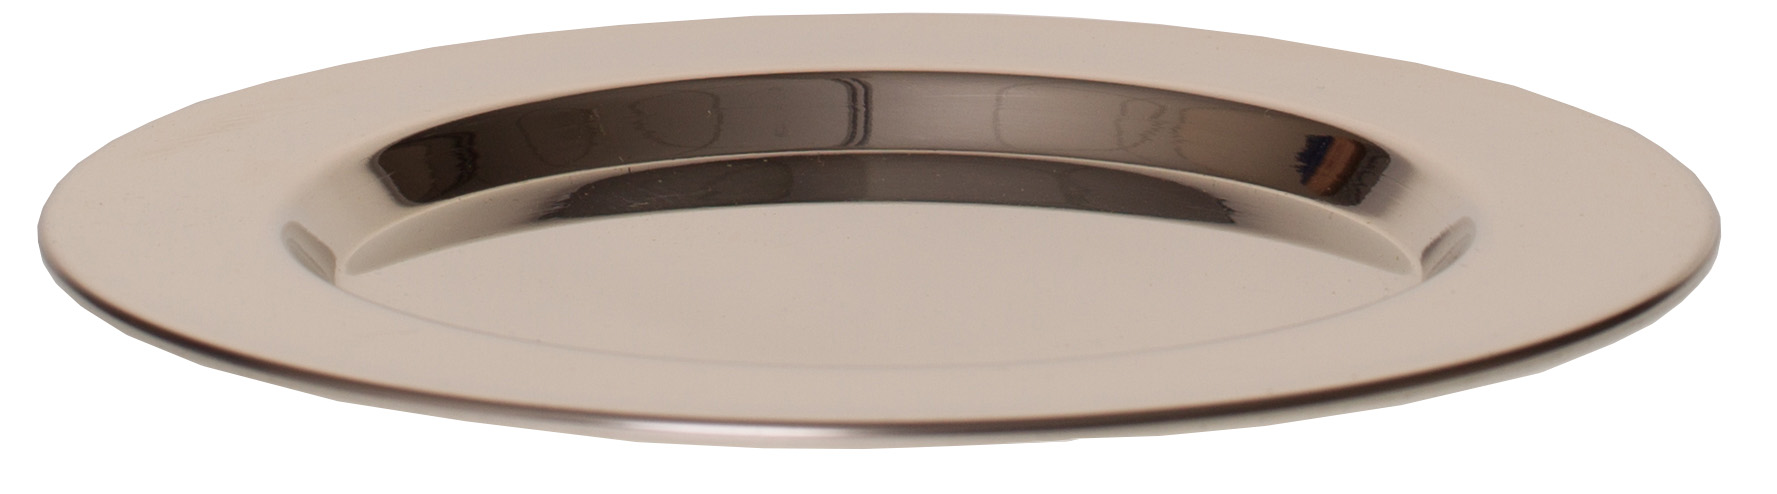 "STAINLESS STEEL TIP TRAY 5"" ROUND"